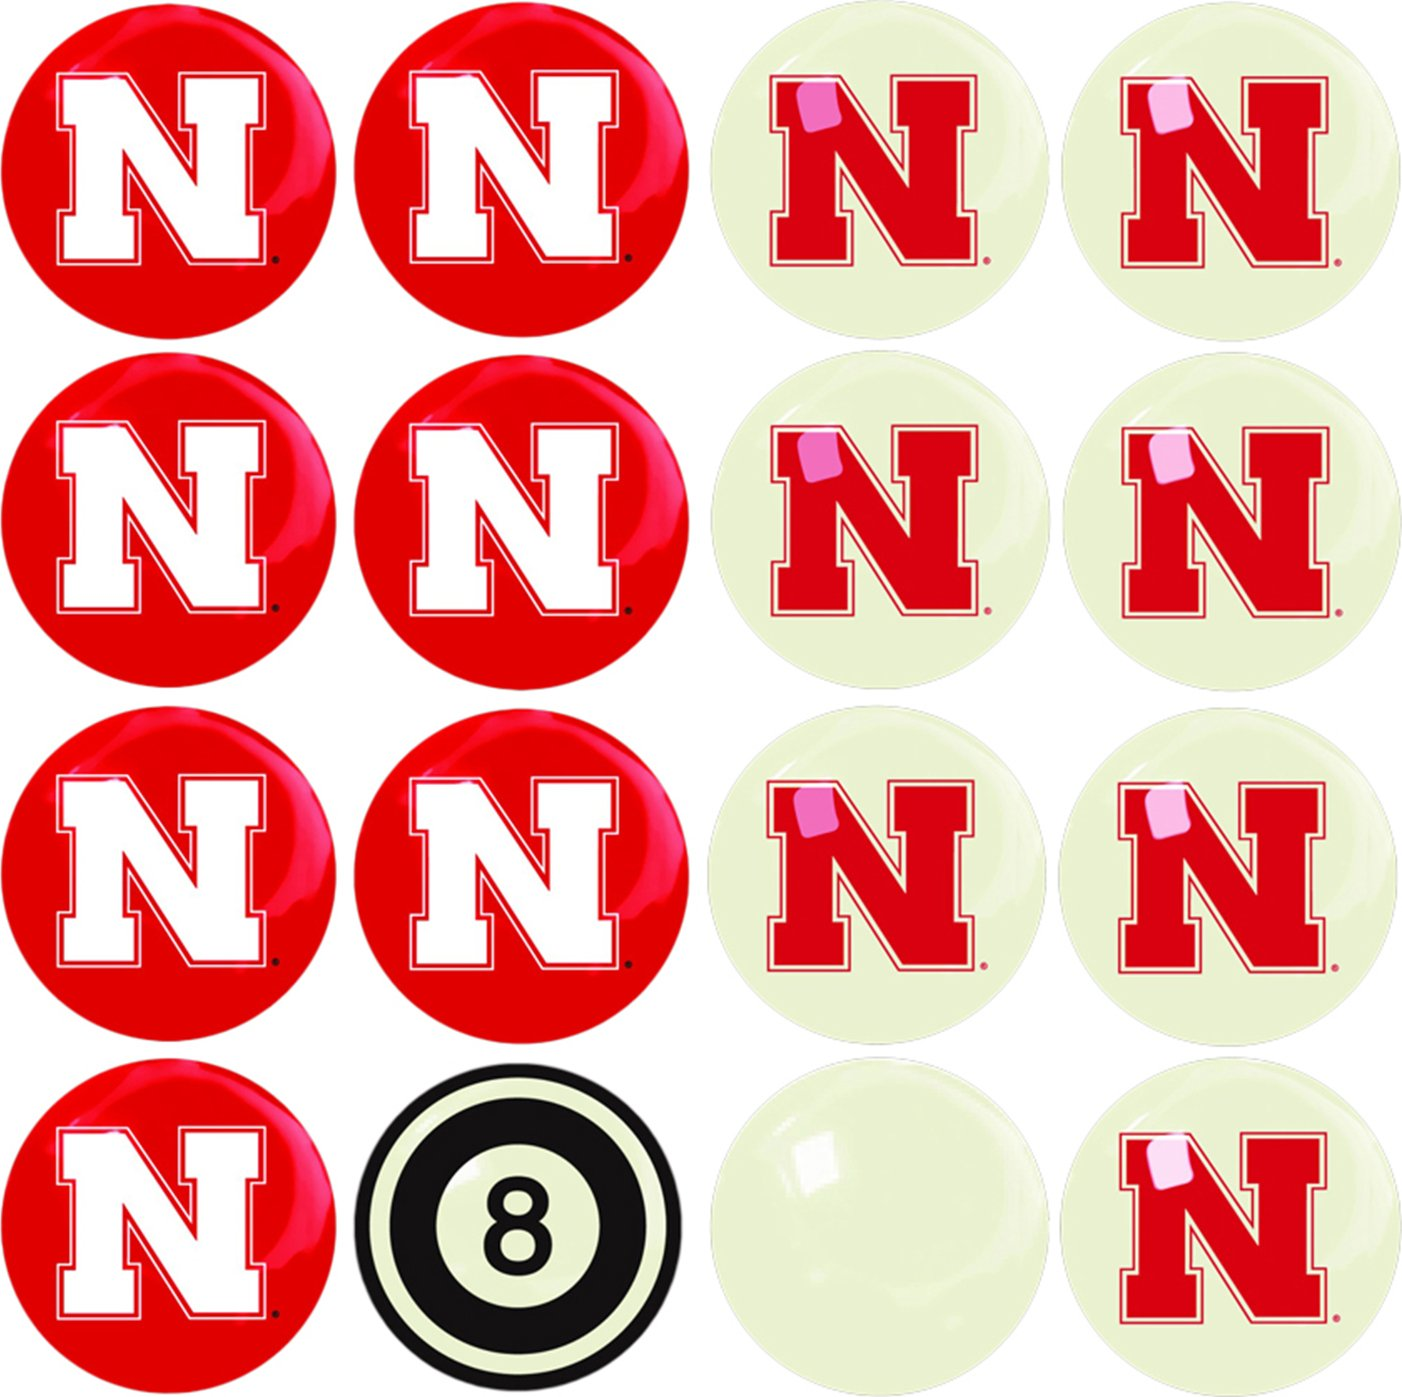 Imperial Cornhuskers Officially Licensed B001QGRIIE NCAAホームvs. Away Nebraska Teamビリヤード/プールボール、Complete 16ボールセット B001QGRIIE Nebraska Cornhuskers, レインワールド:acd1d89f --- m2cweb.com